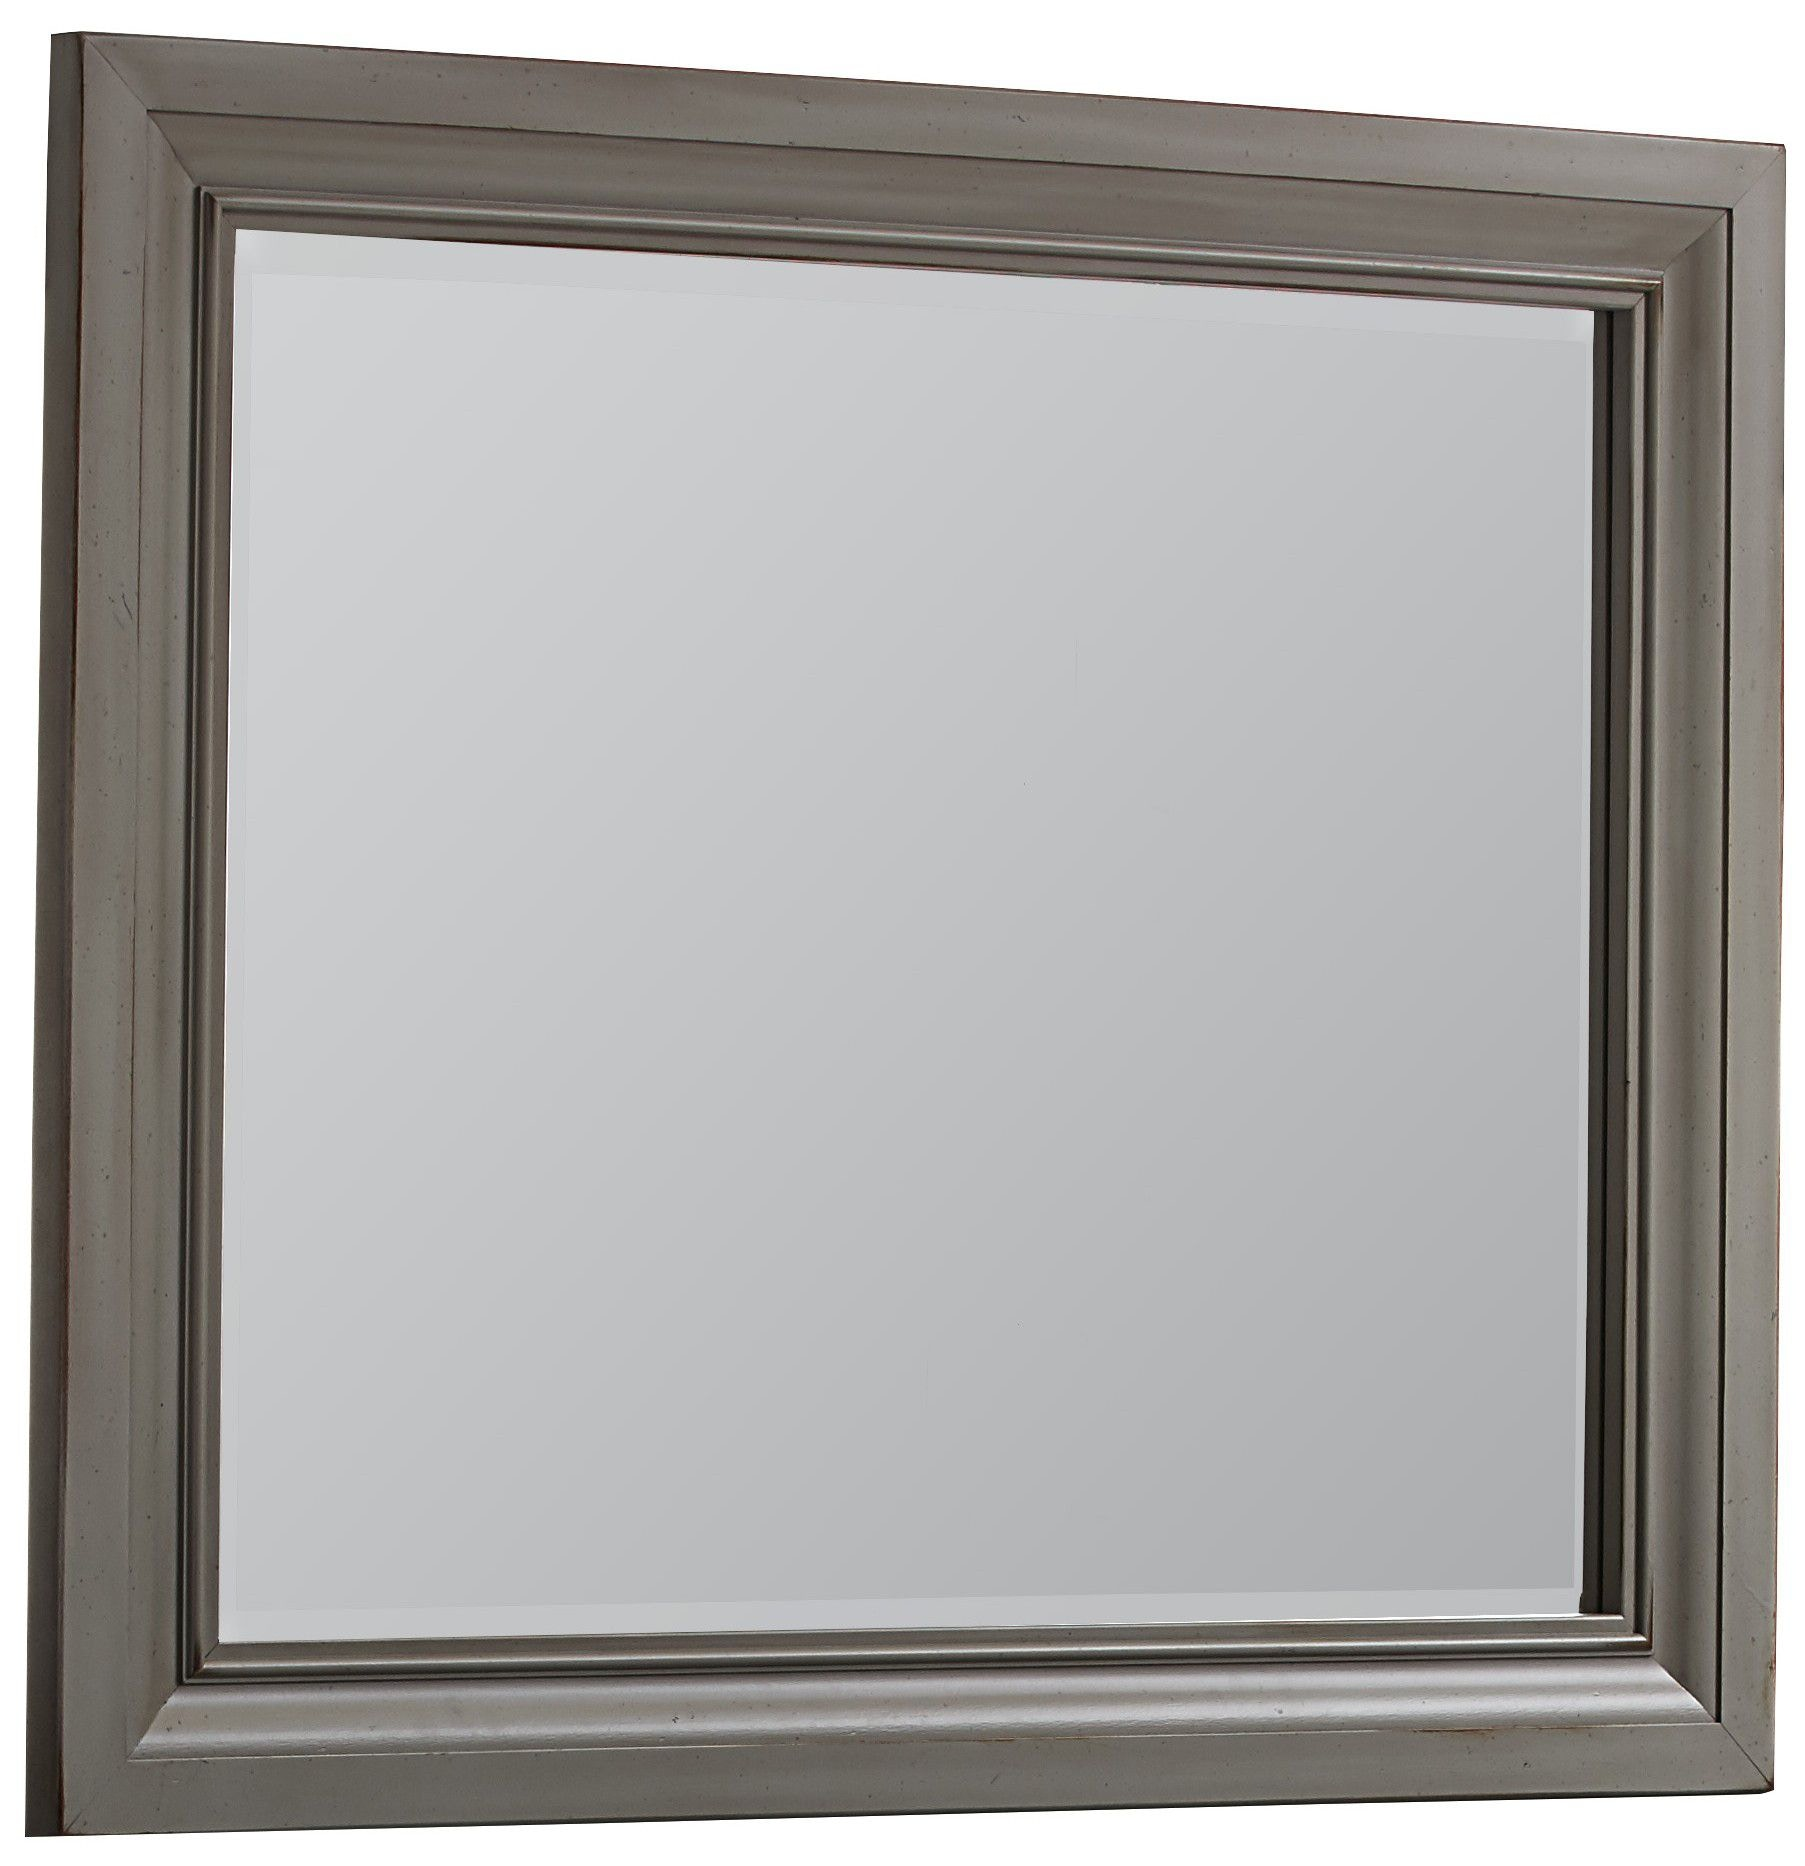 Vaughan Bassett Furniture Company Landscape Mirror 531 446